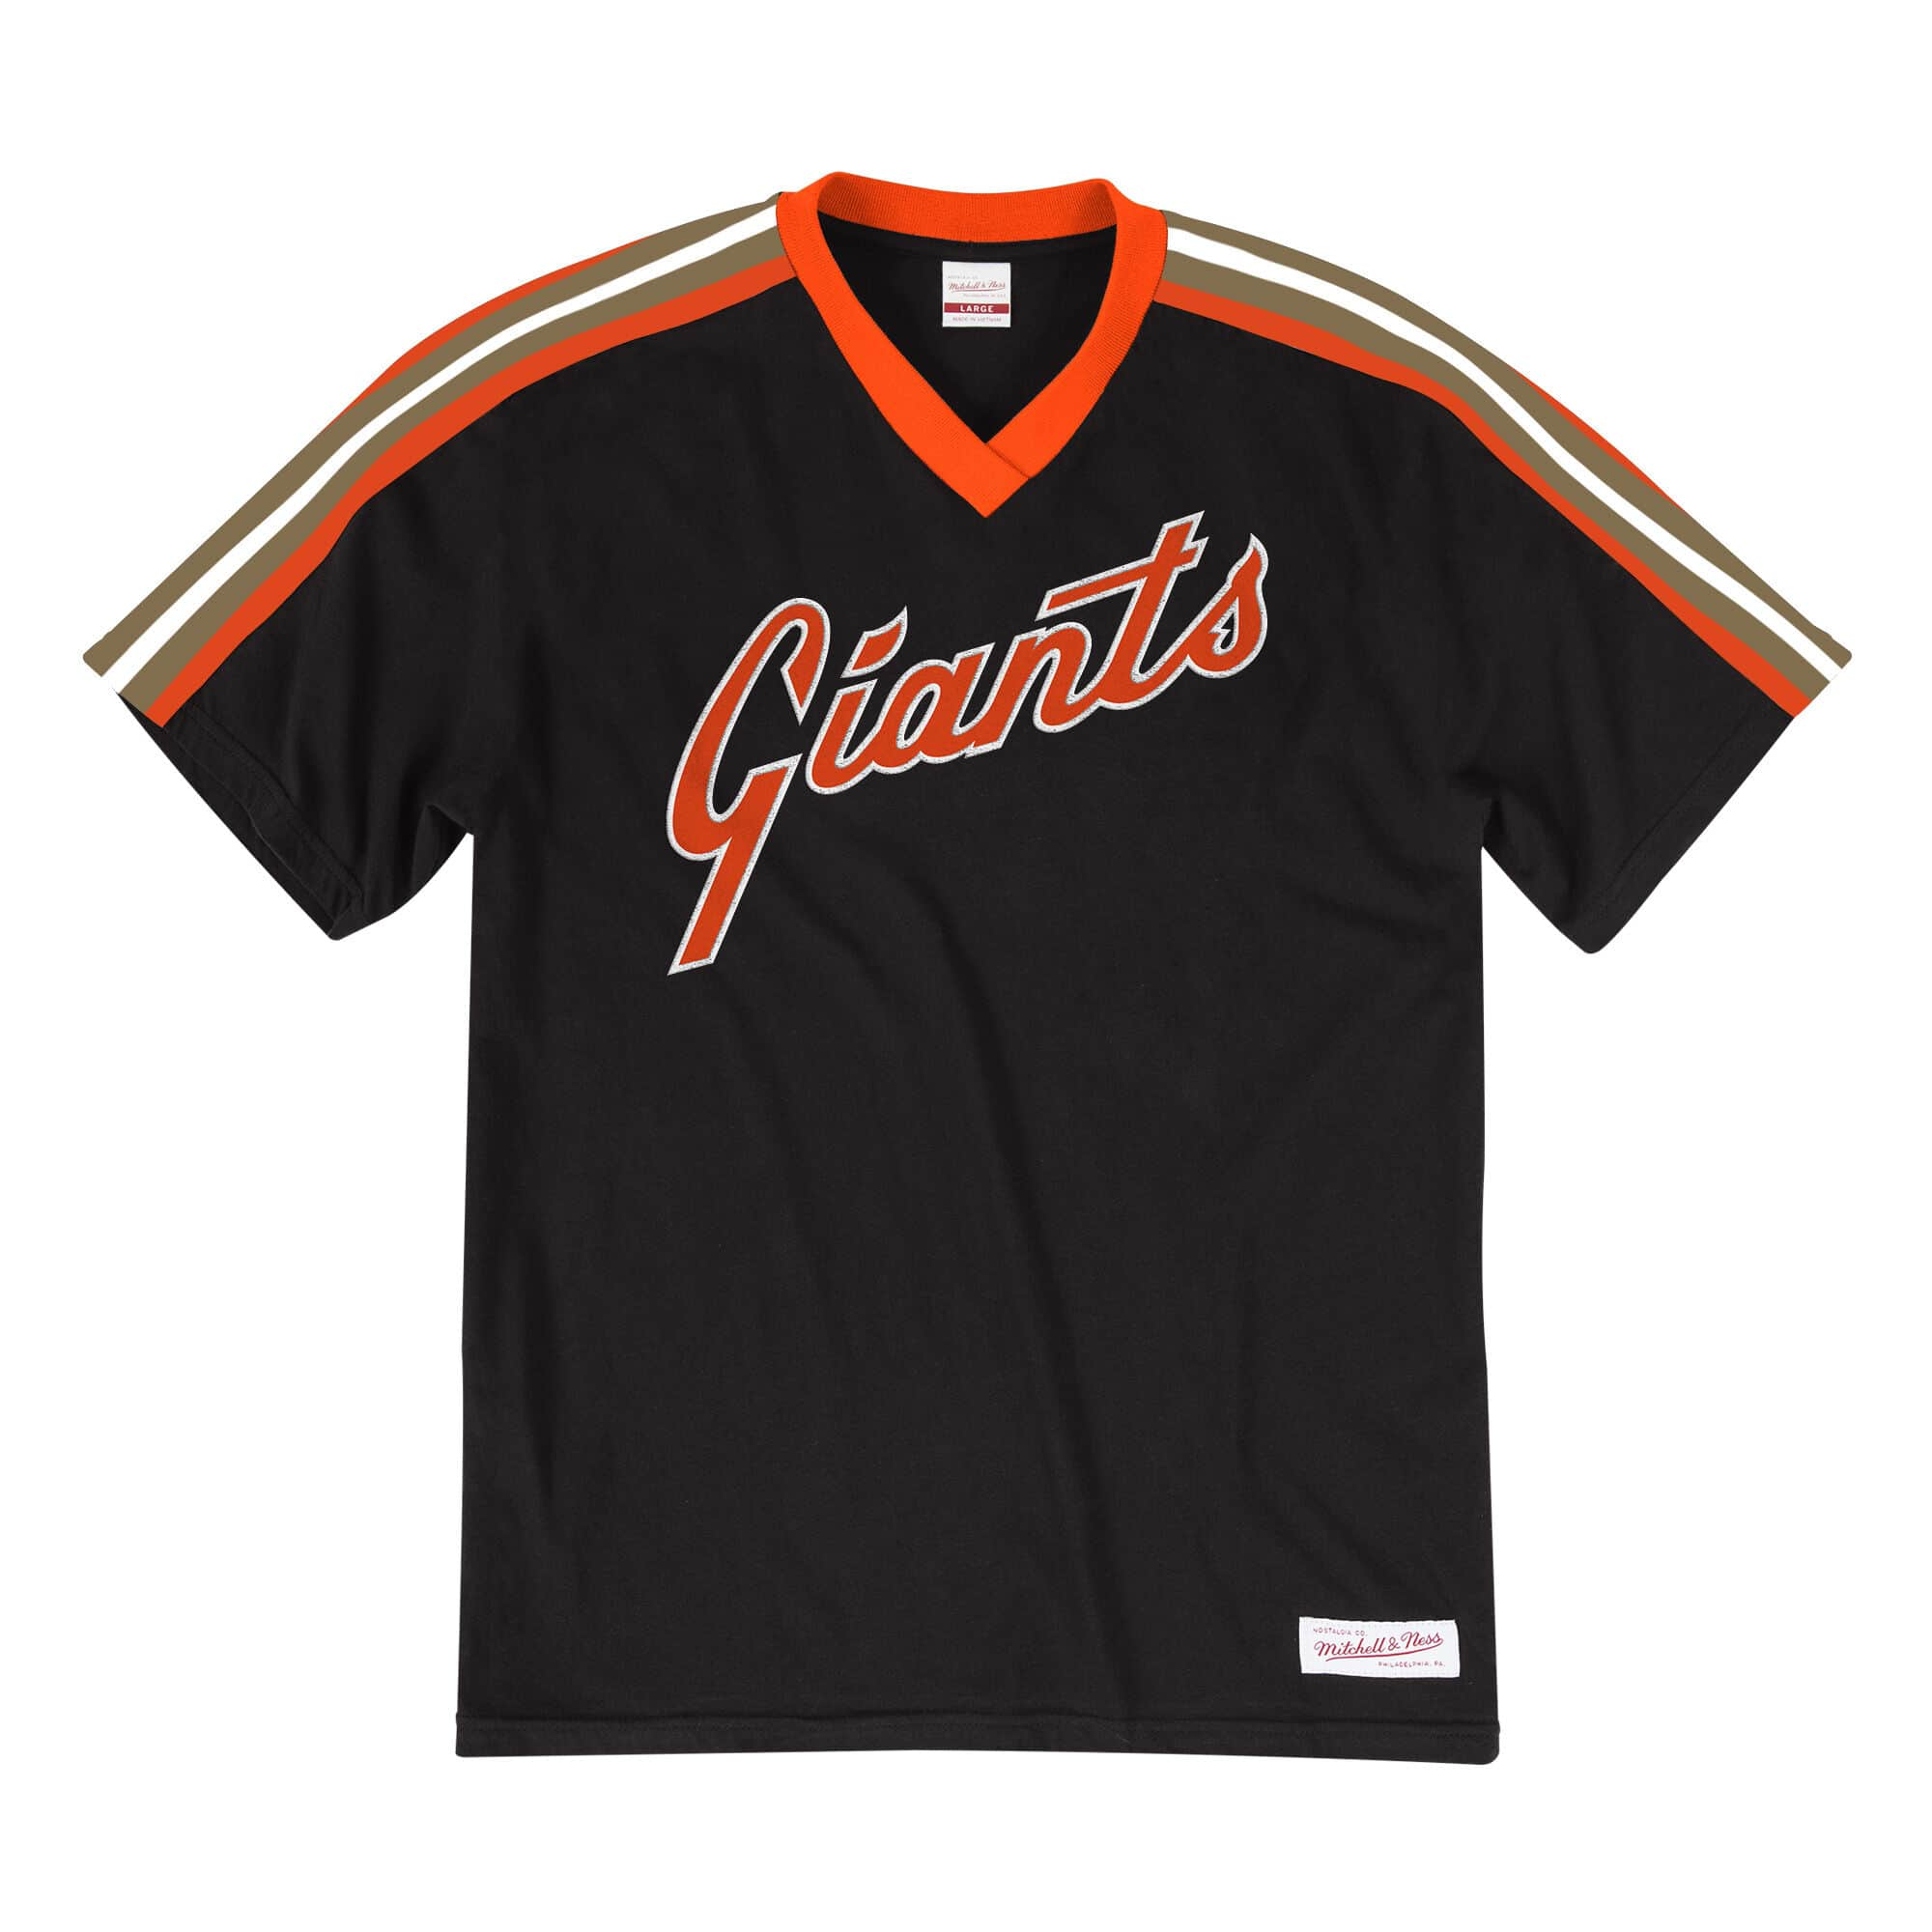 Overtime Win V-Neck Tee San Francisco Giants